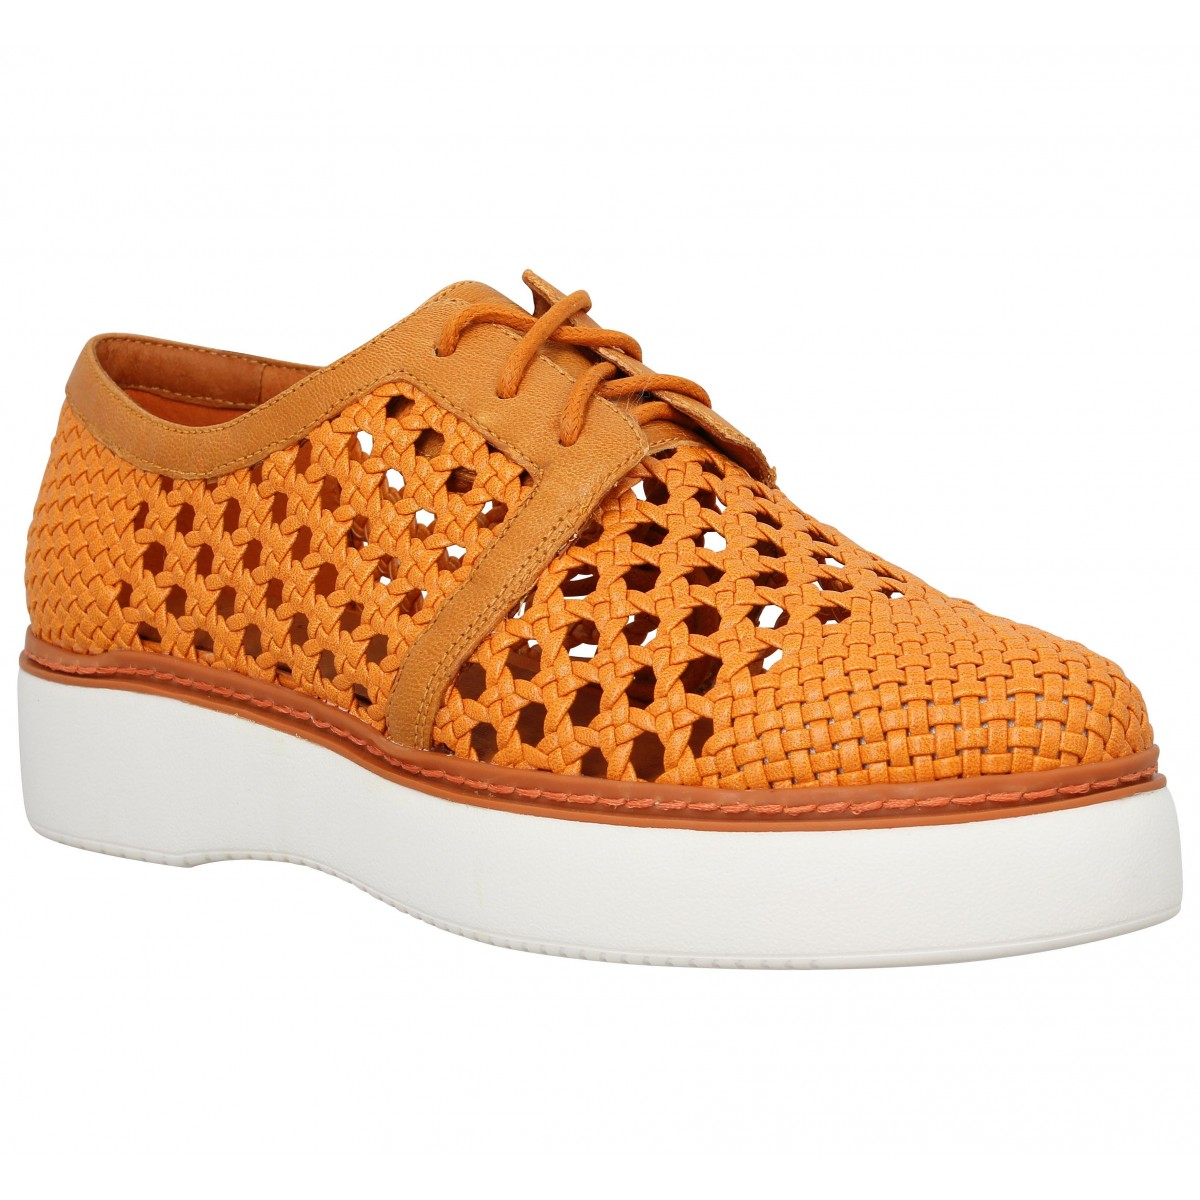 Chaussures à lacets WHAT FOR 7024 Femme Orange